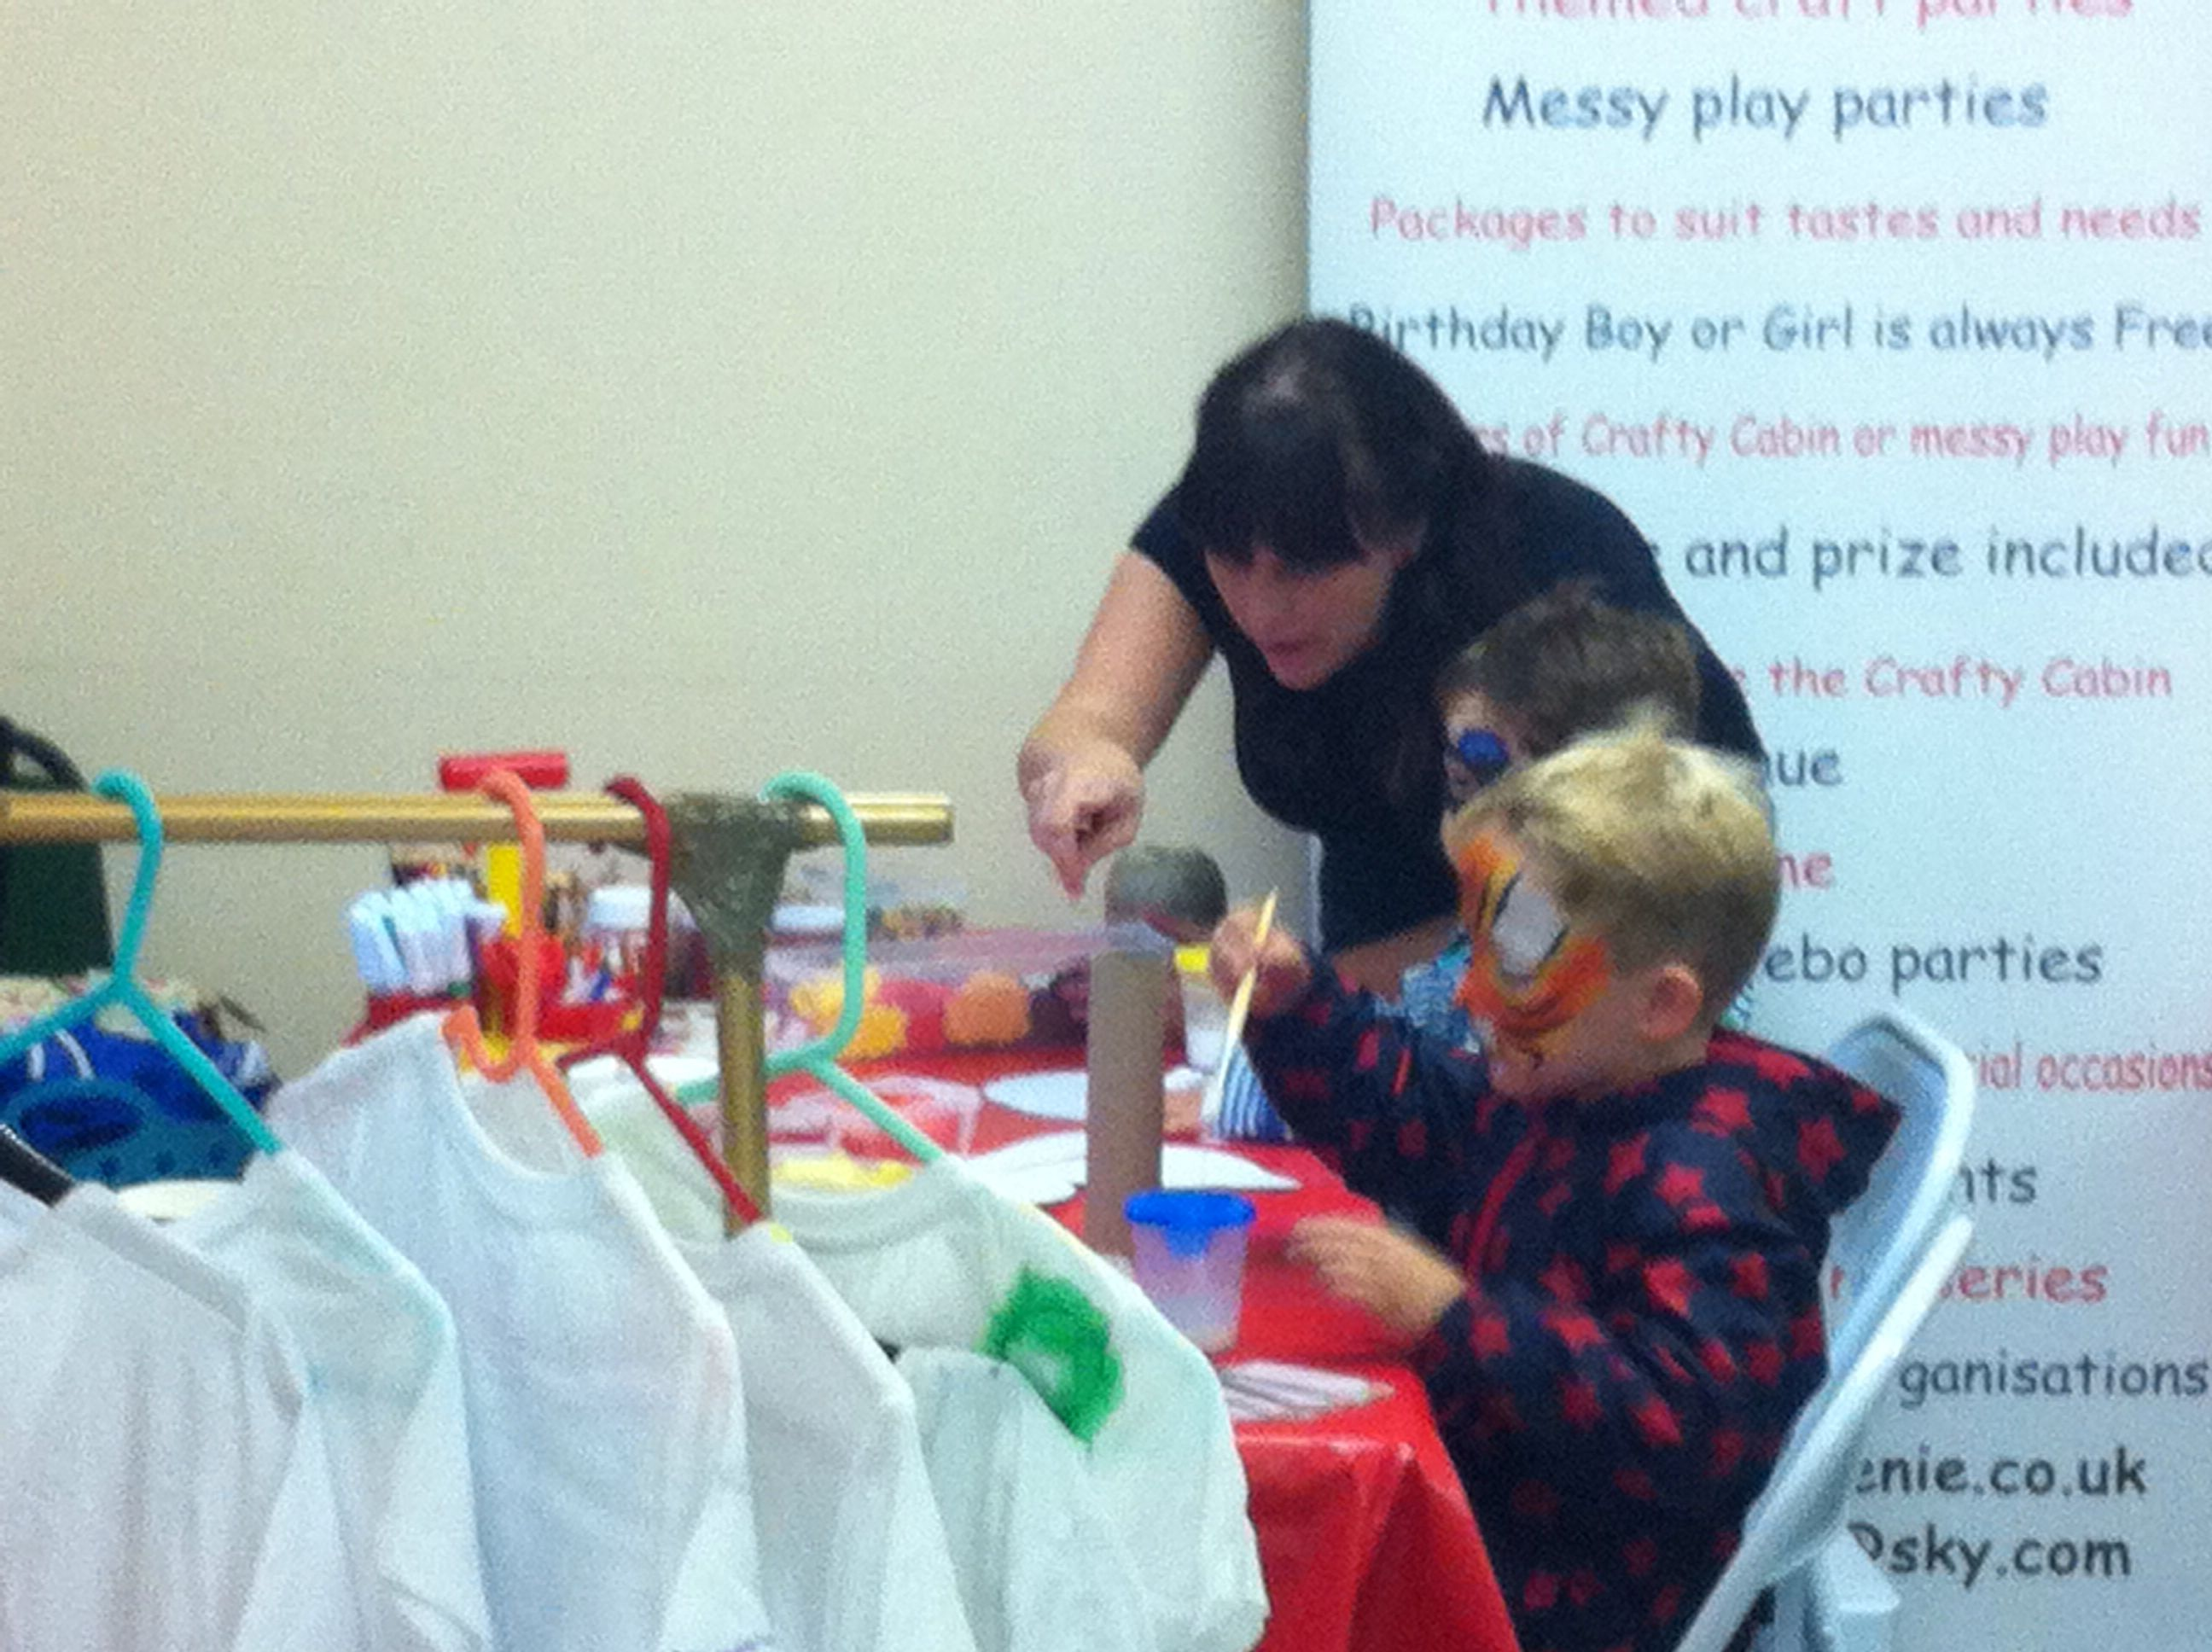 Creative children crafting away makes them happy for the day :-) mobile arts and crafts!